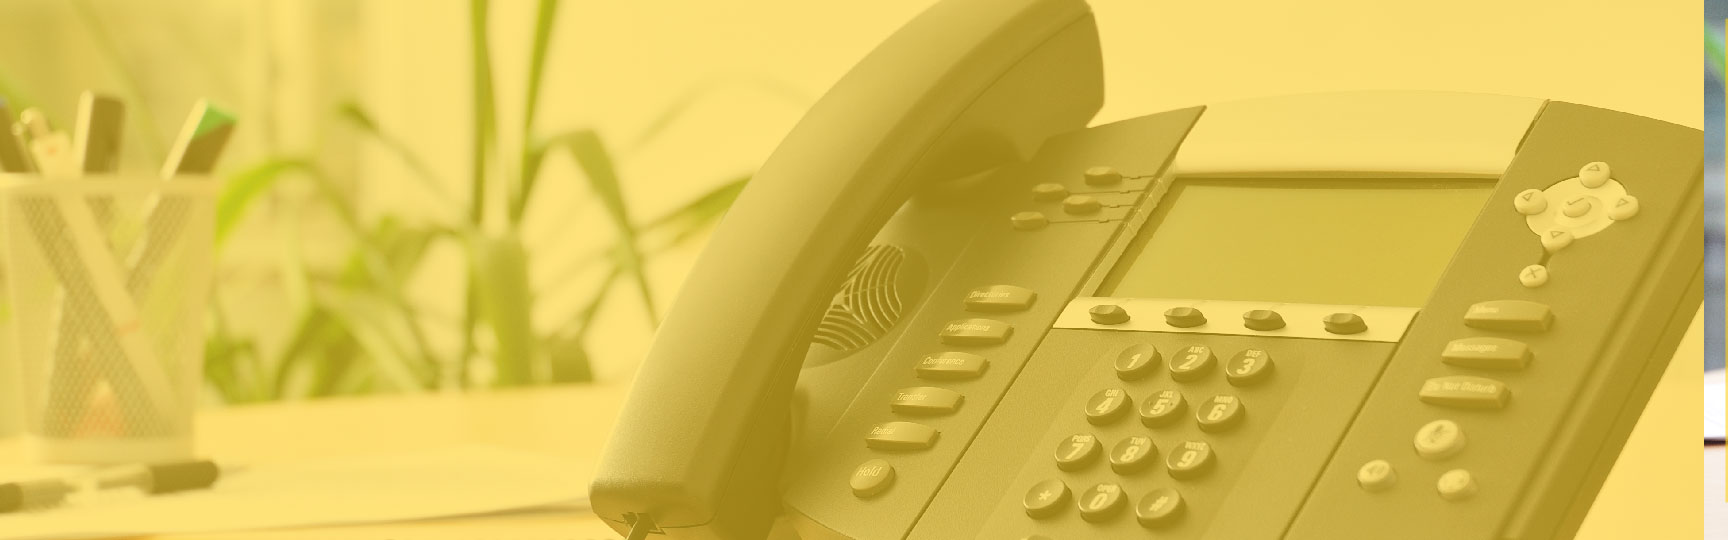 What Are The Benefits Of Using Hosted Voip For My Business